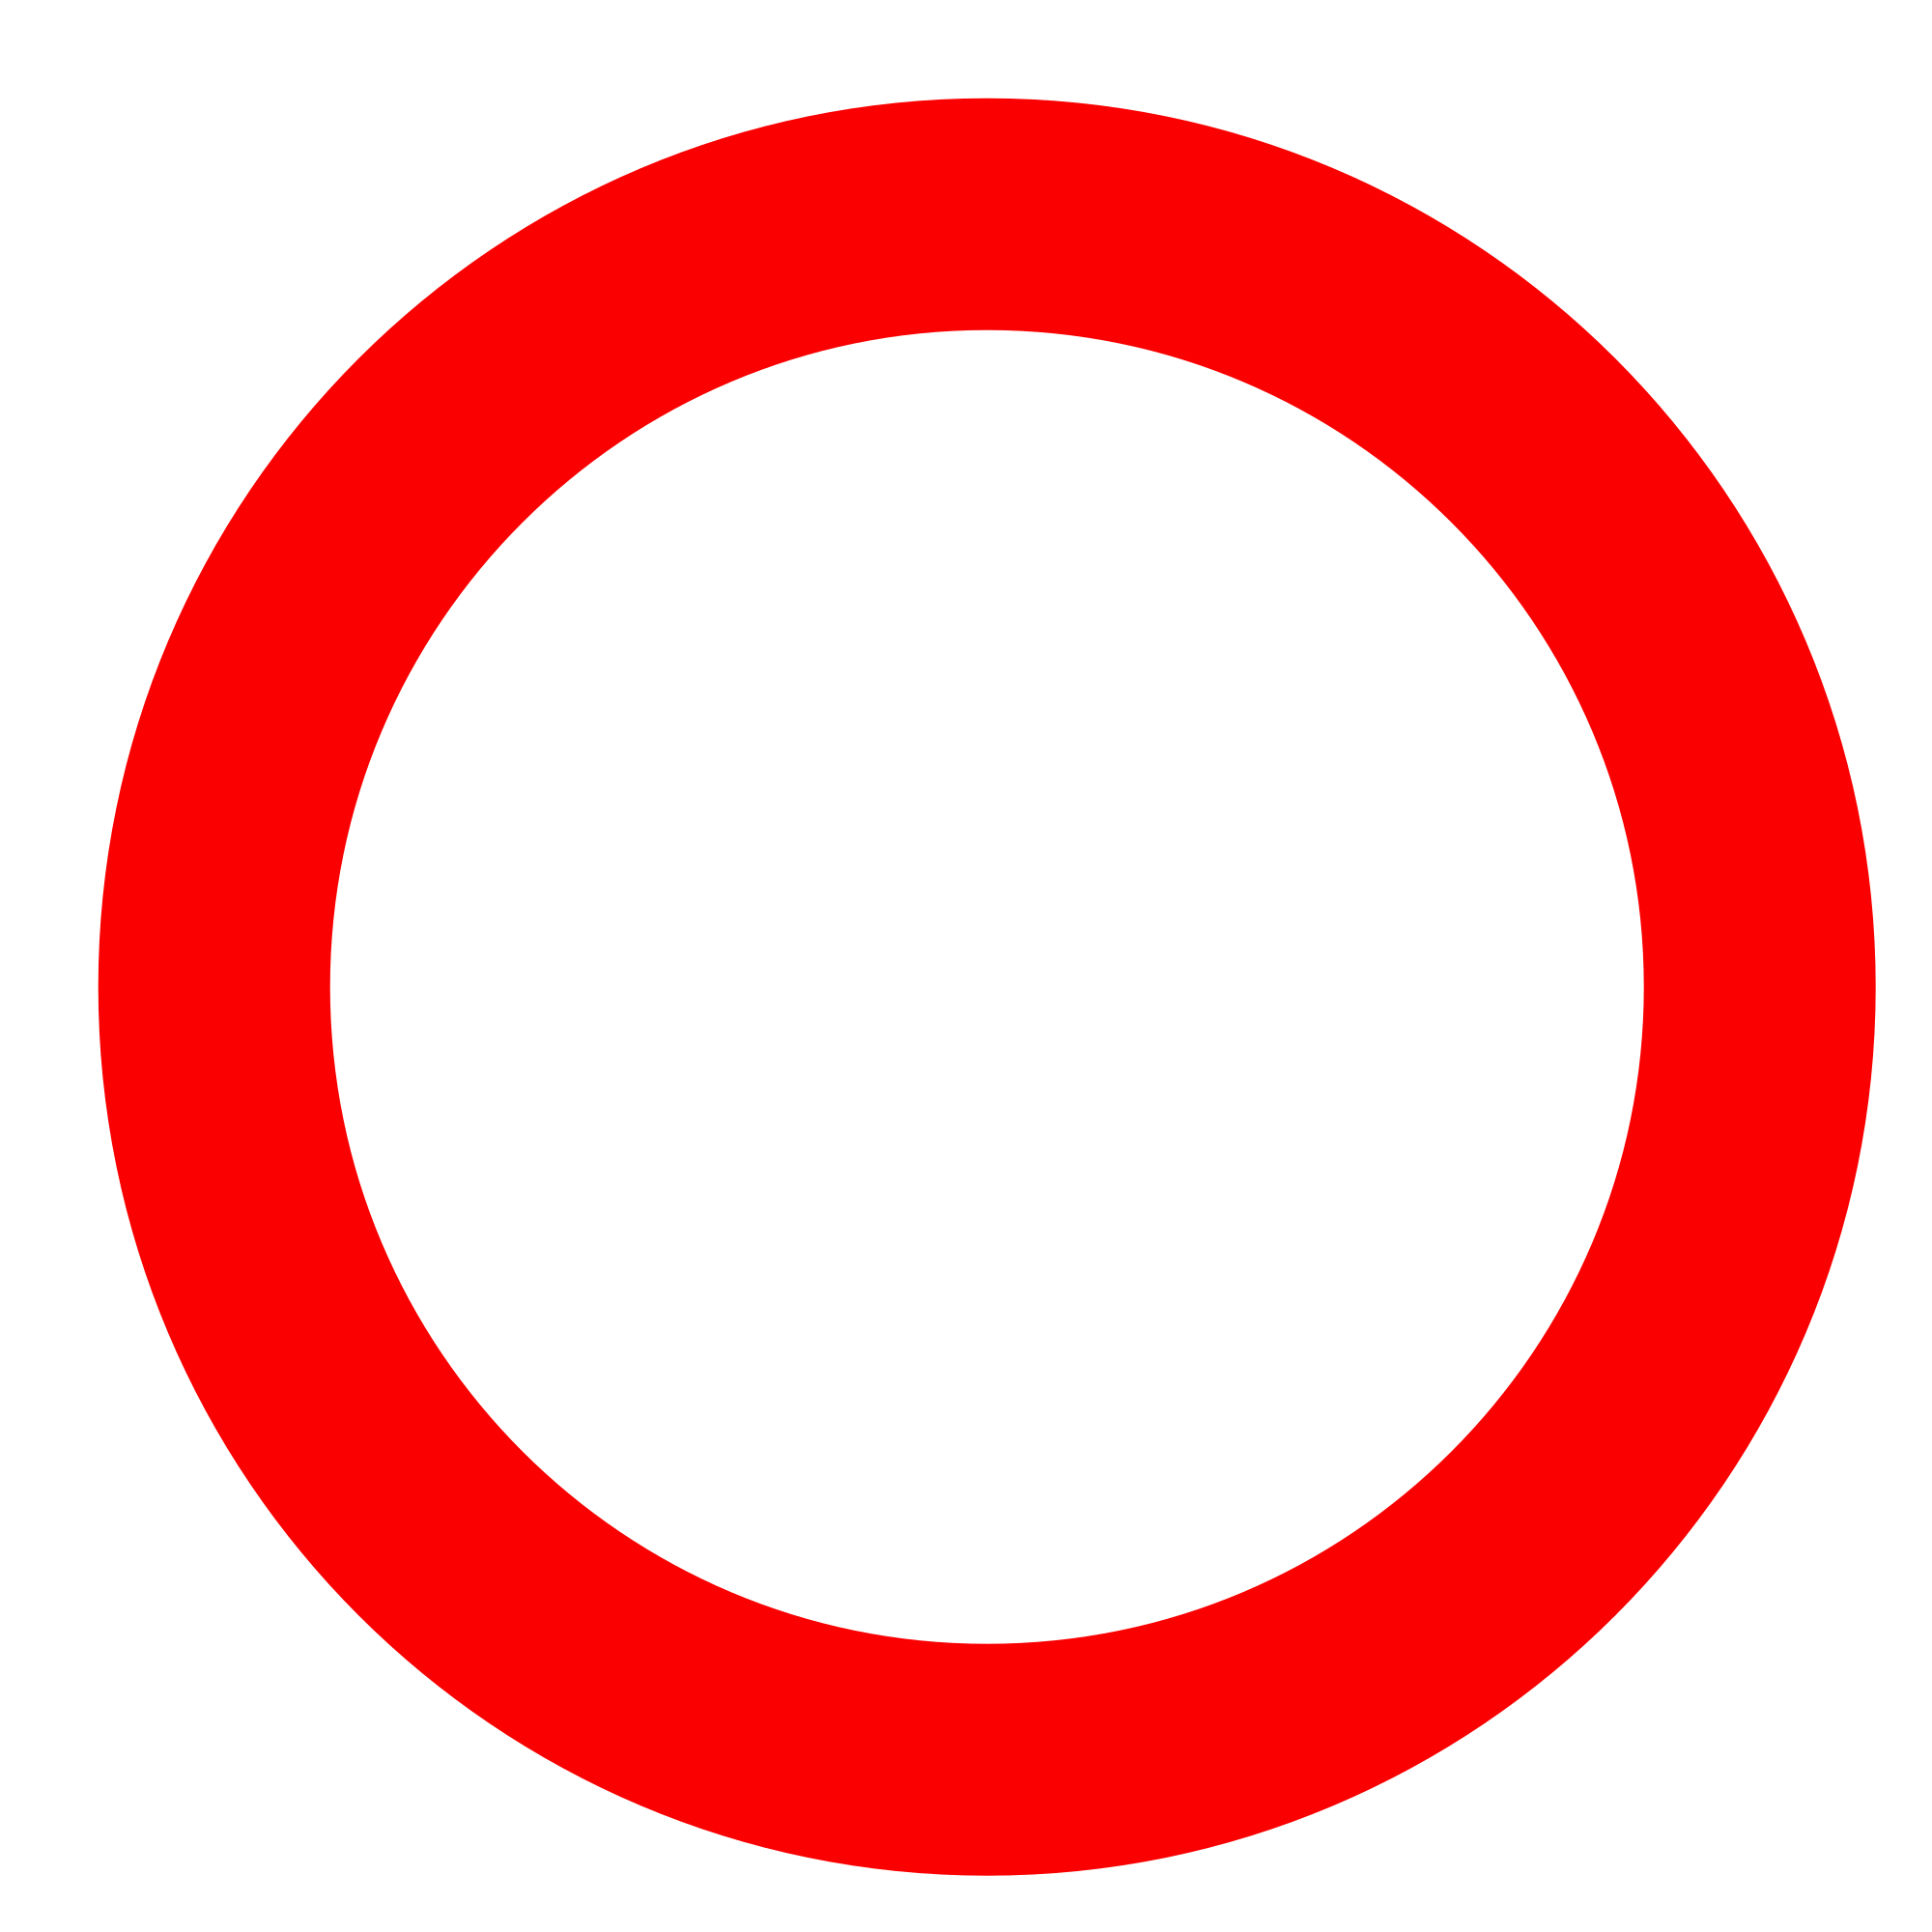 Red circle png. File thick svg wikimedia